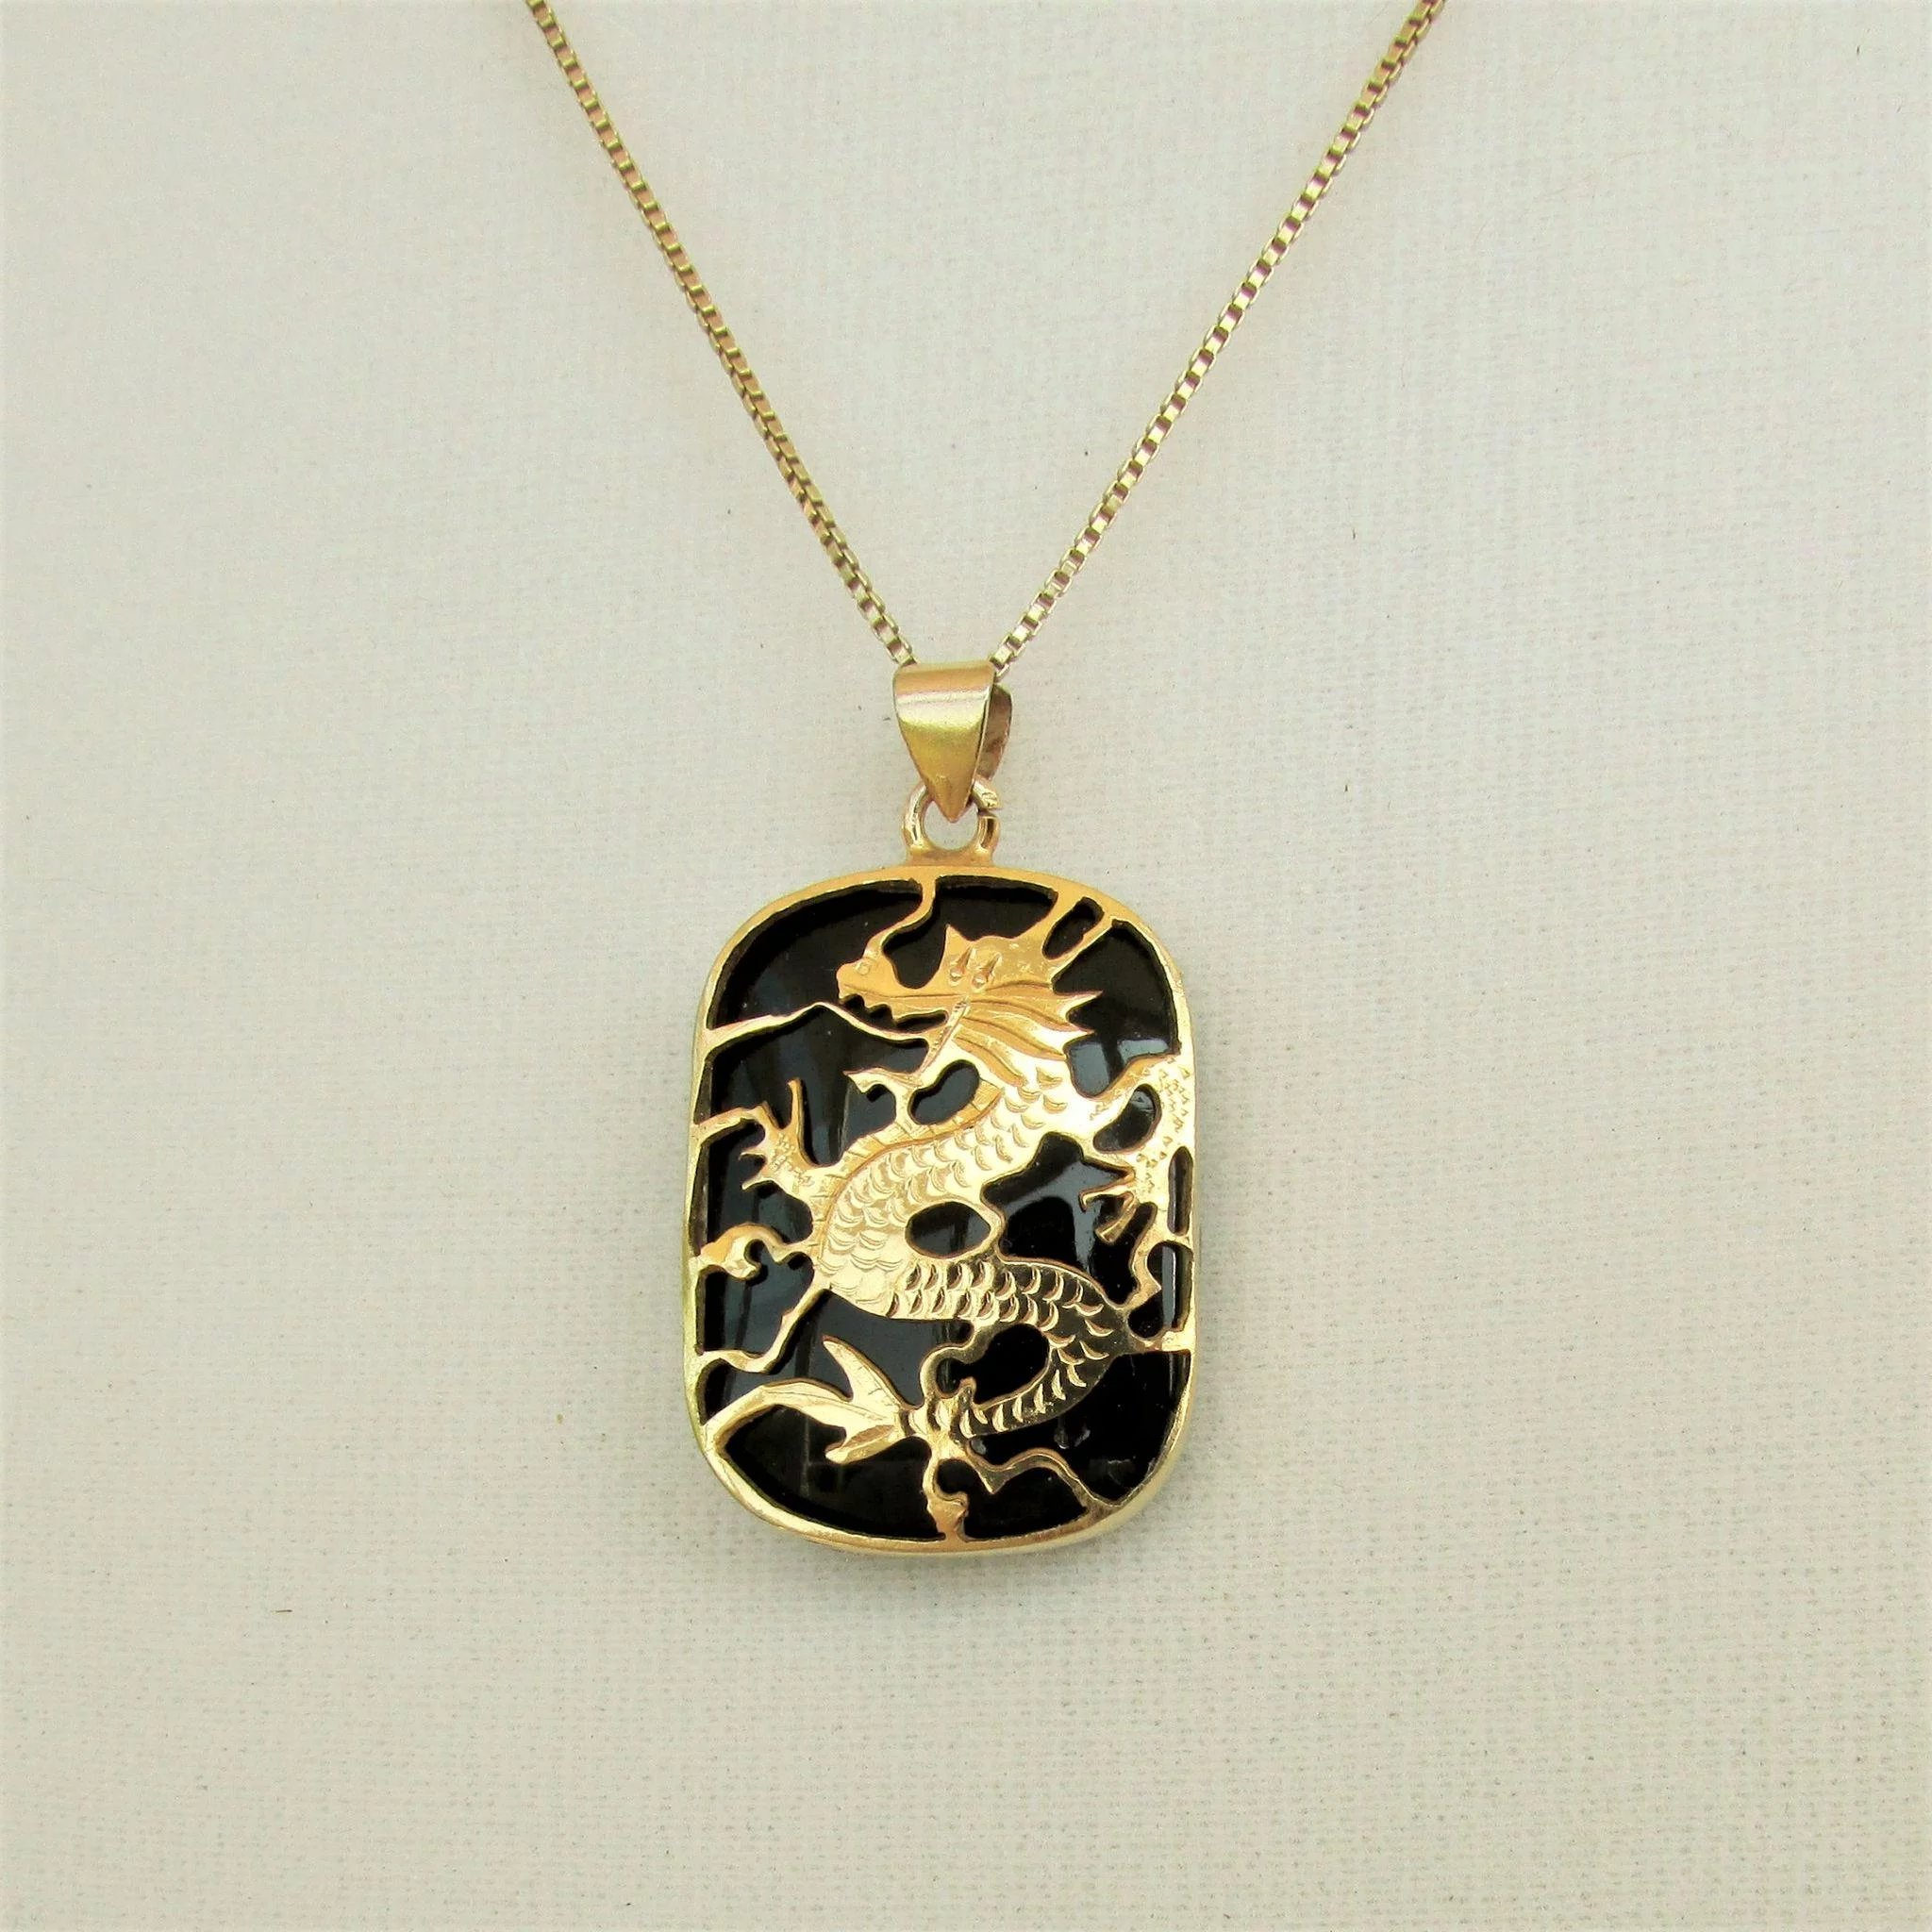 engraved black product legacies oval pendant pet agate more necklace onyx photo daybreak gem